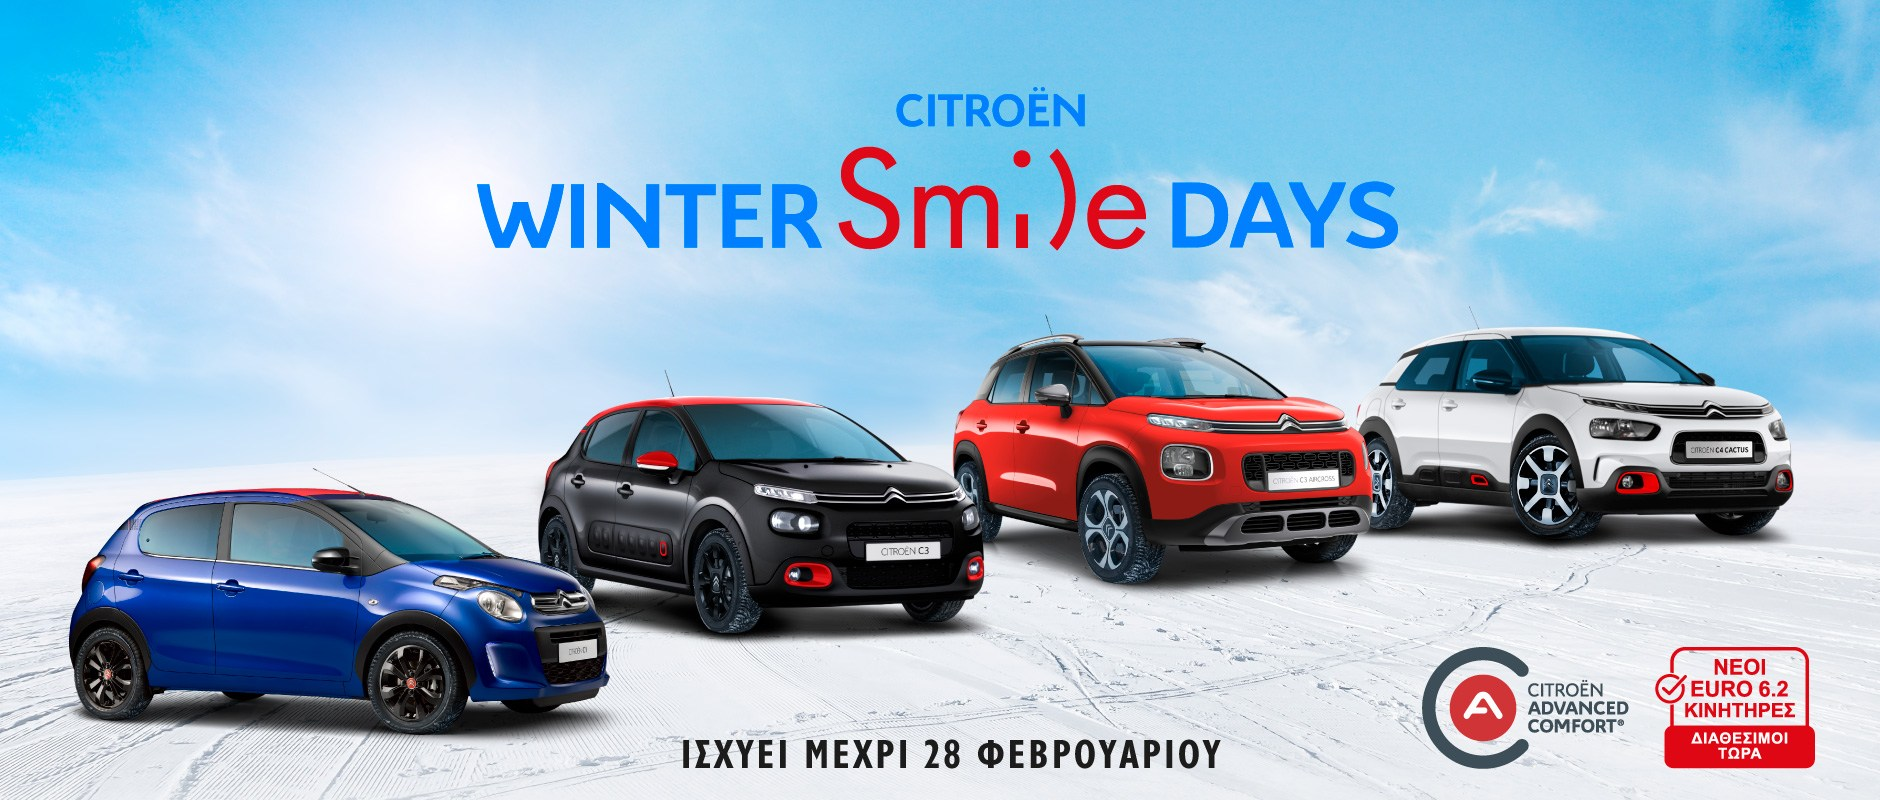 CITROËN WINTER SMILE DAYS!